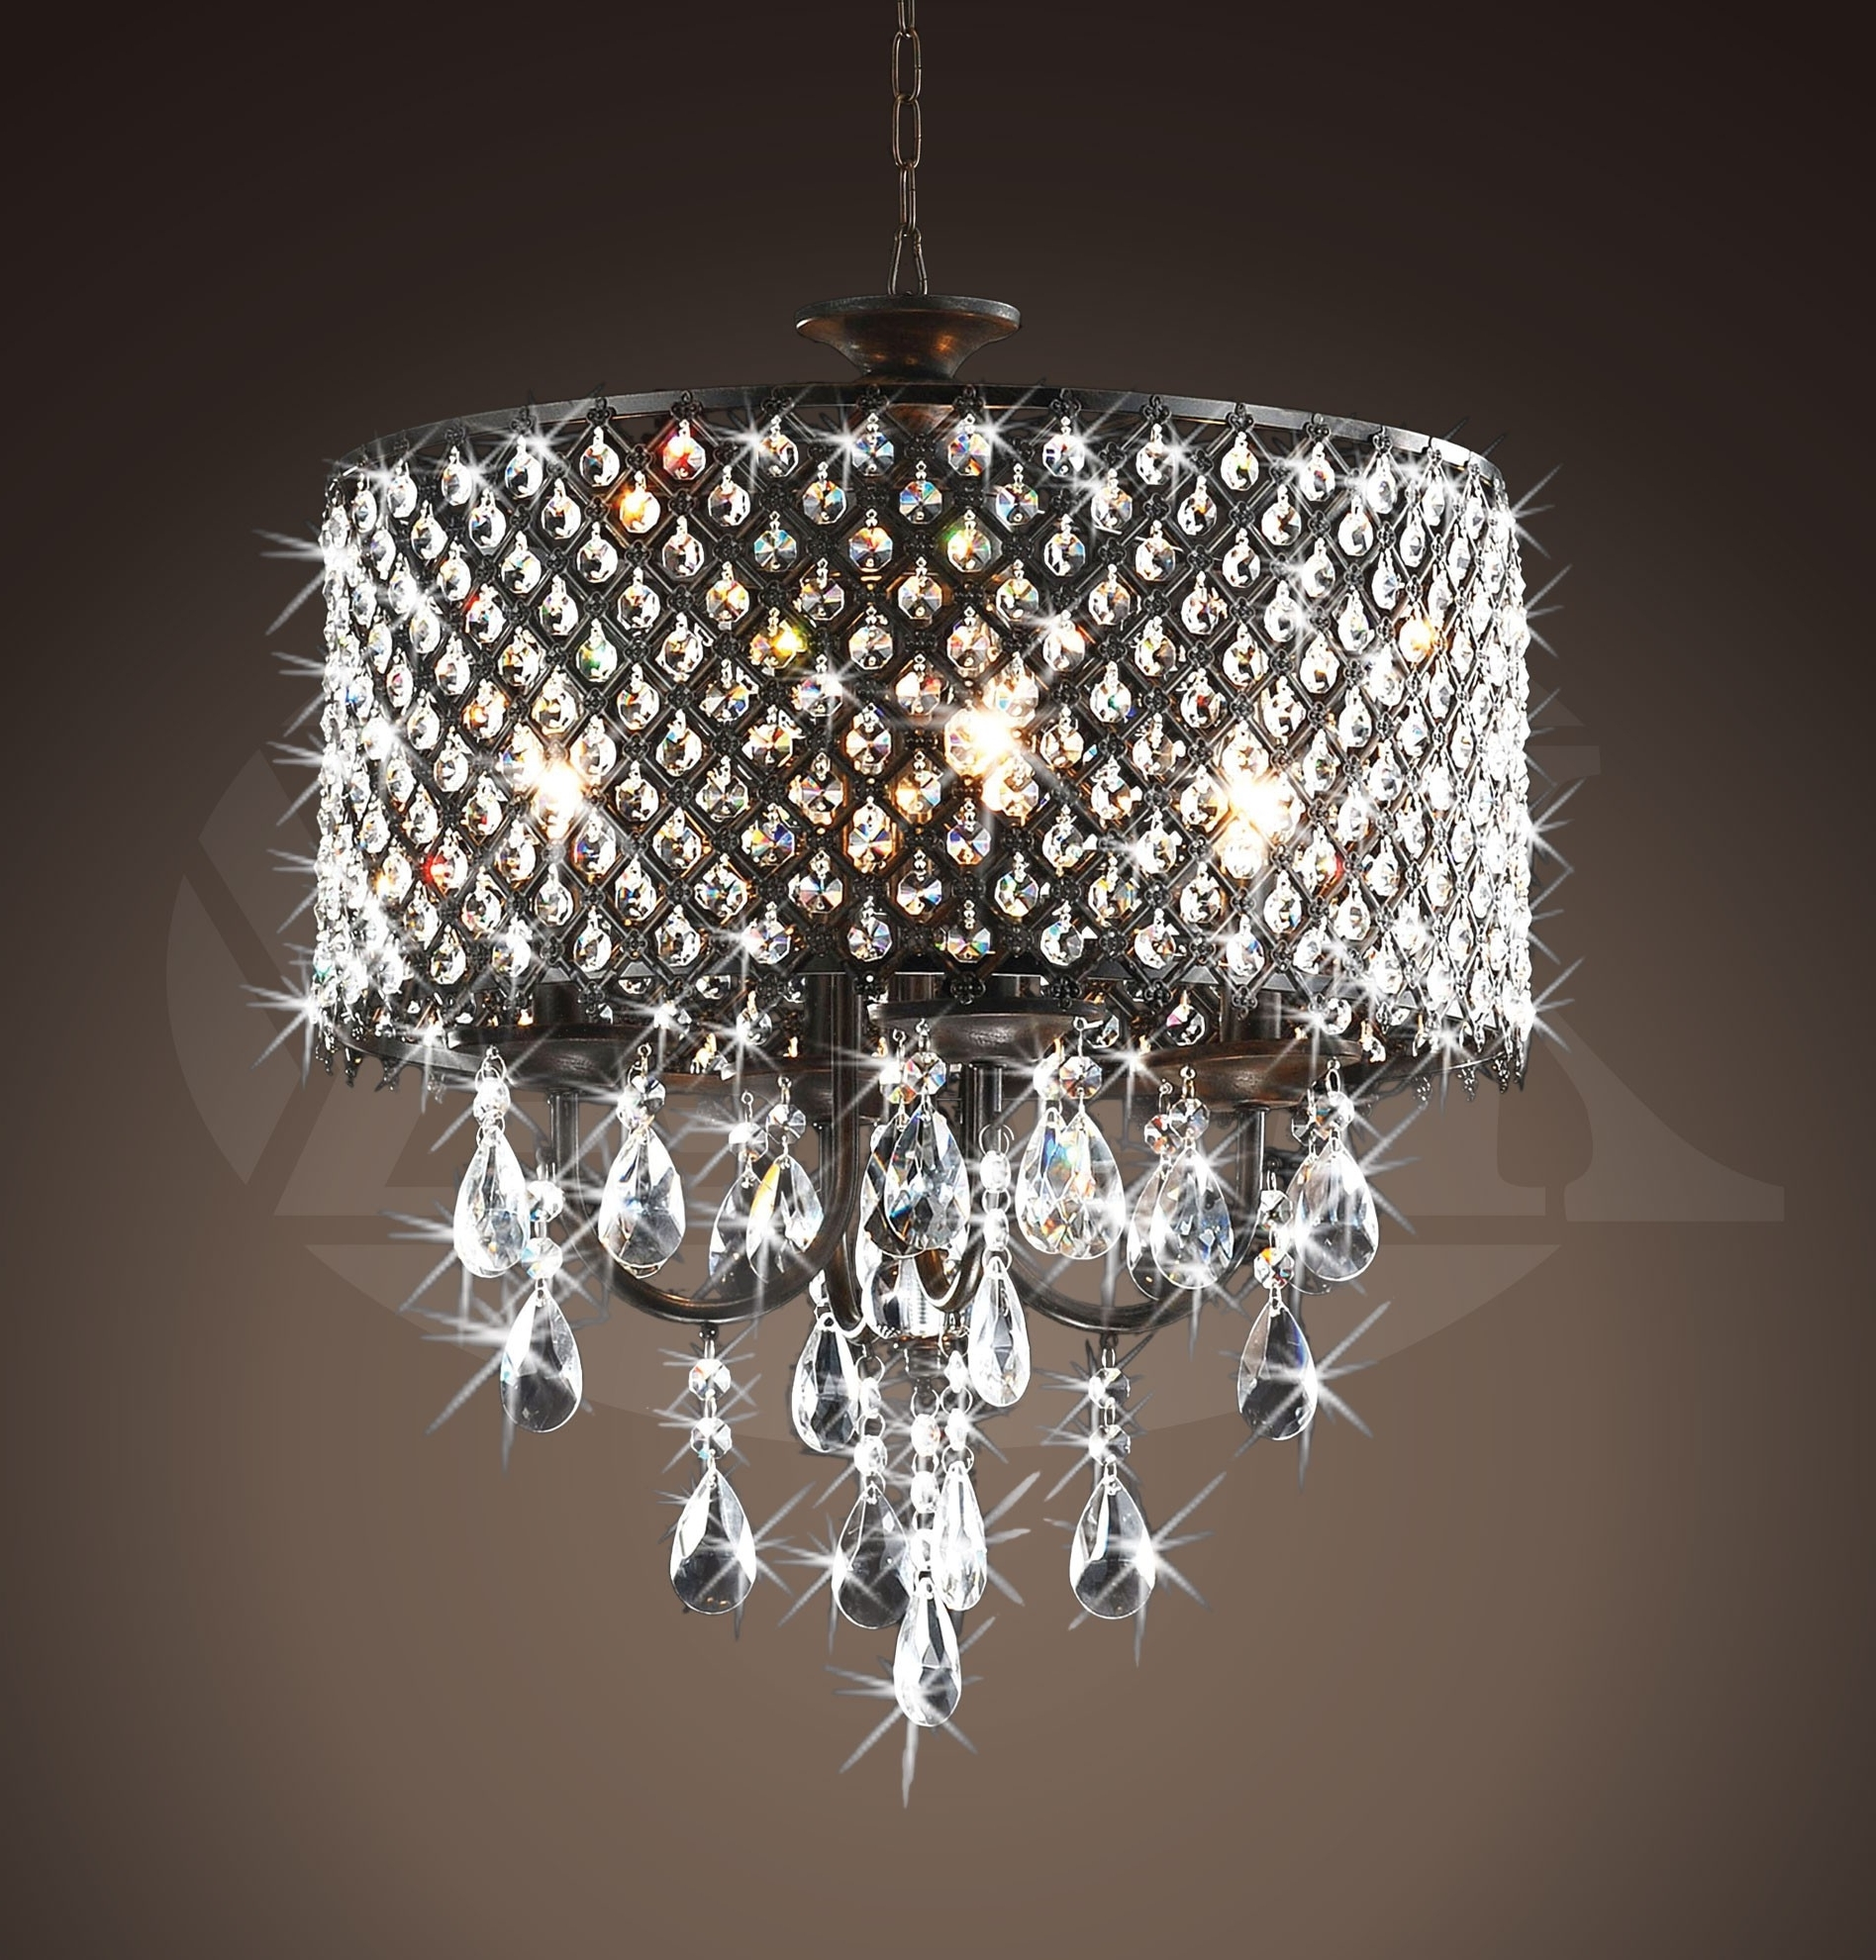 Unusual Chandeliers Pertaining To Most Up To Date Light : Cristal Chandelier Rachelle Light Round Antique Bronze Brass (View 9 of 20)